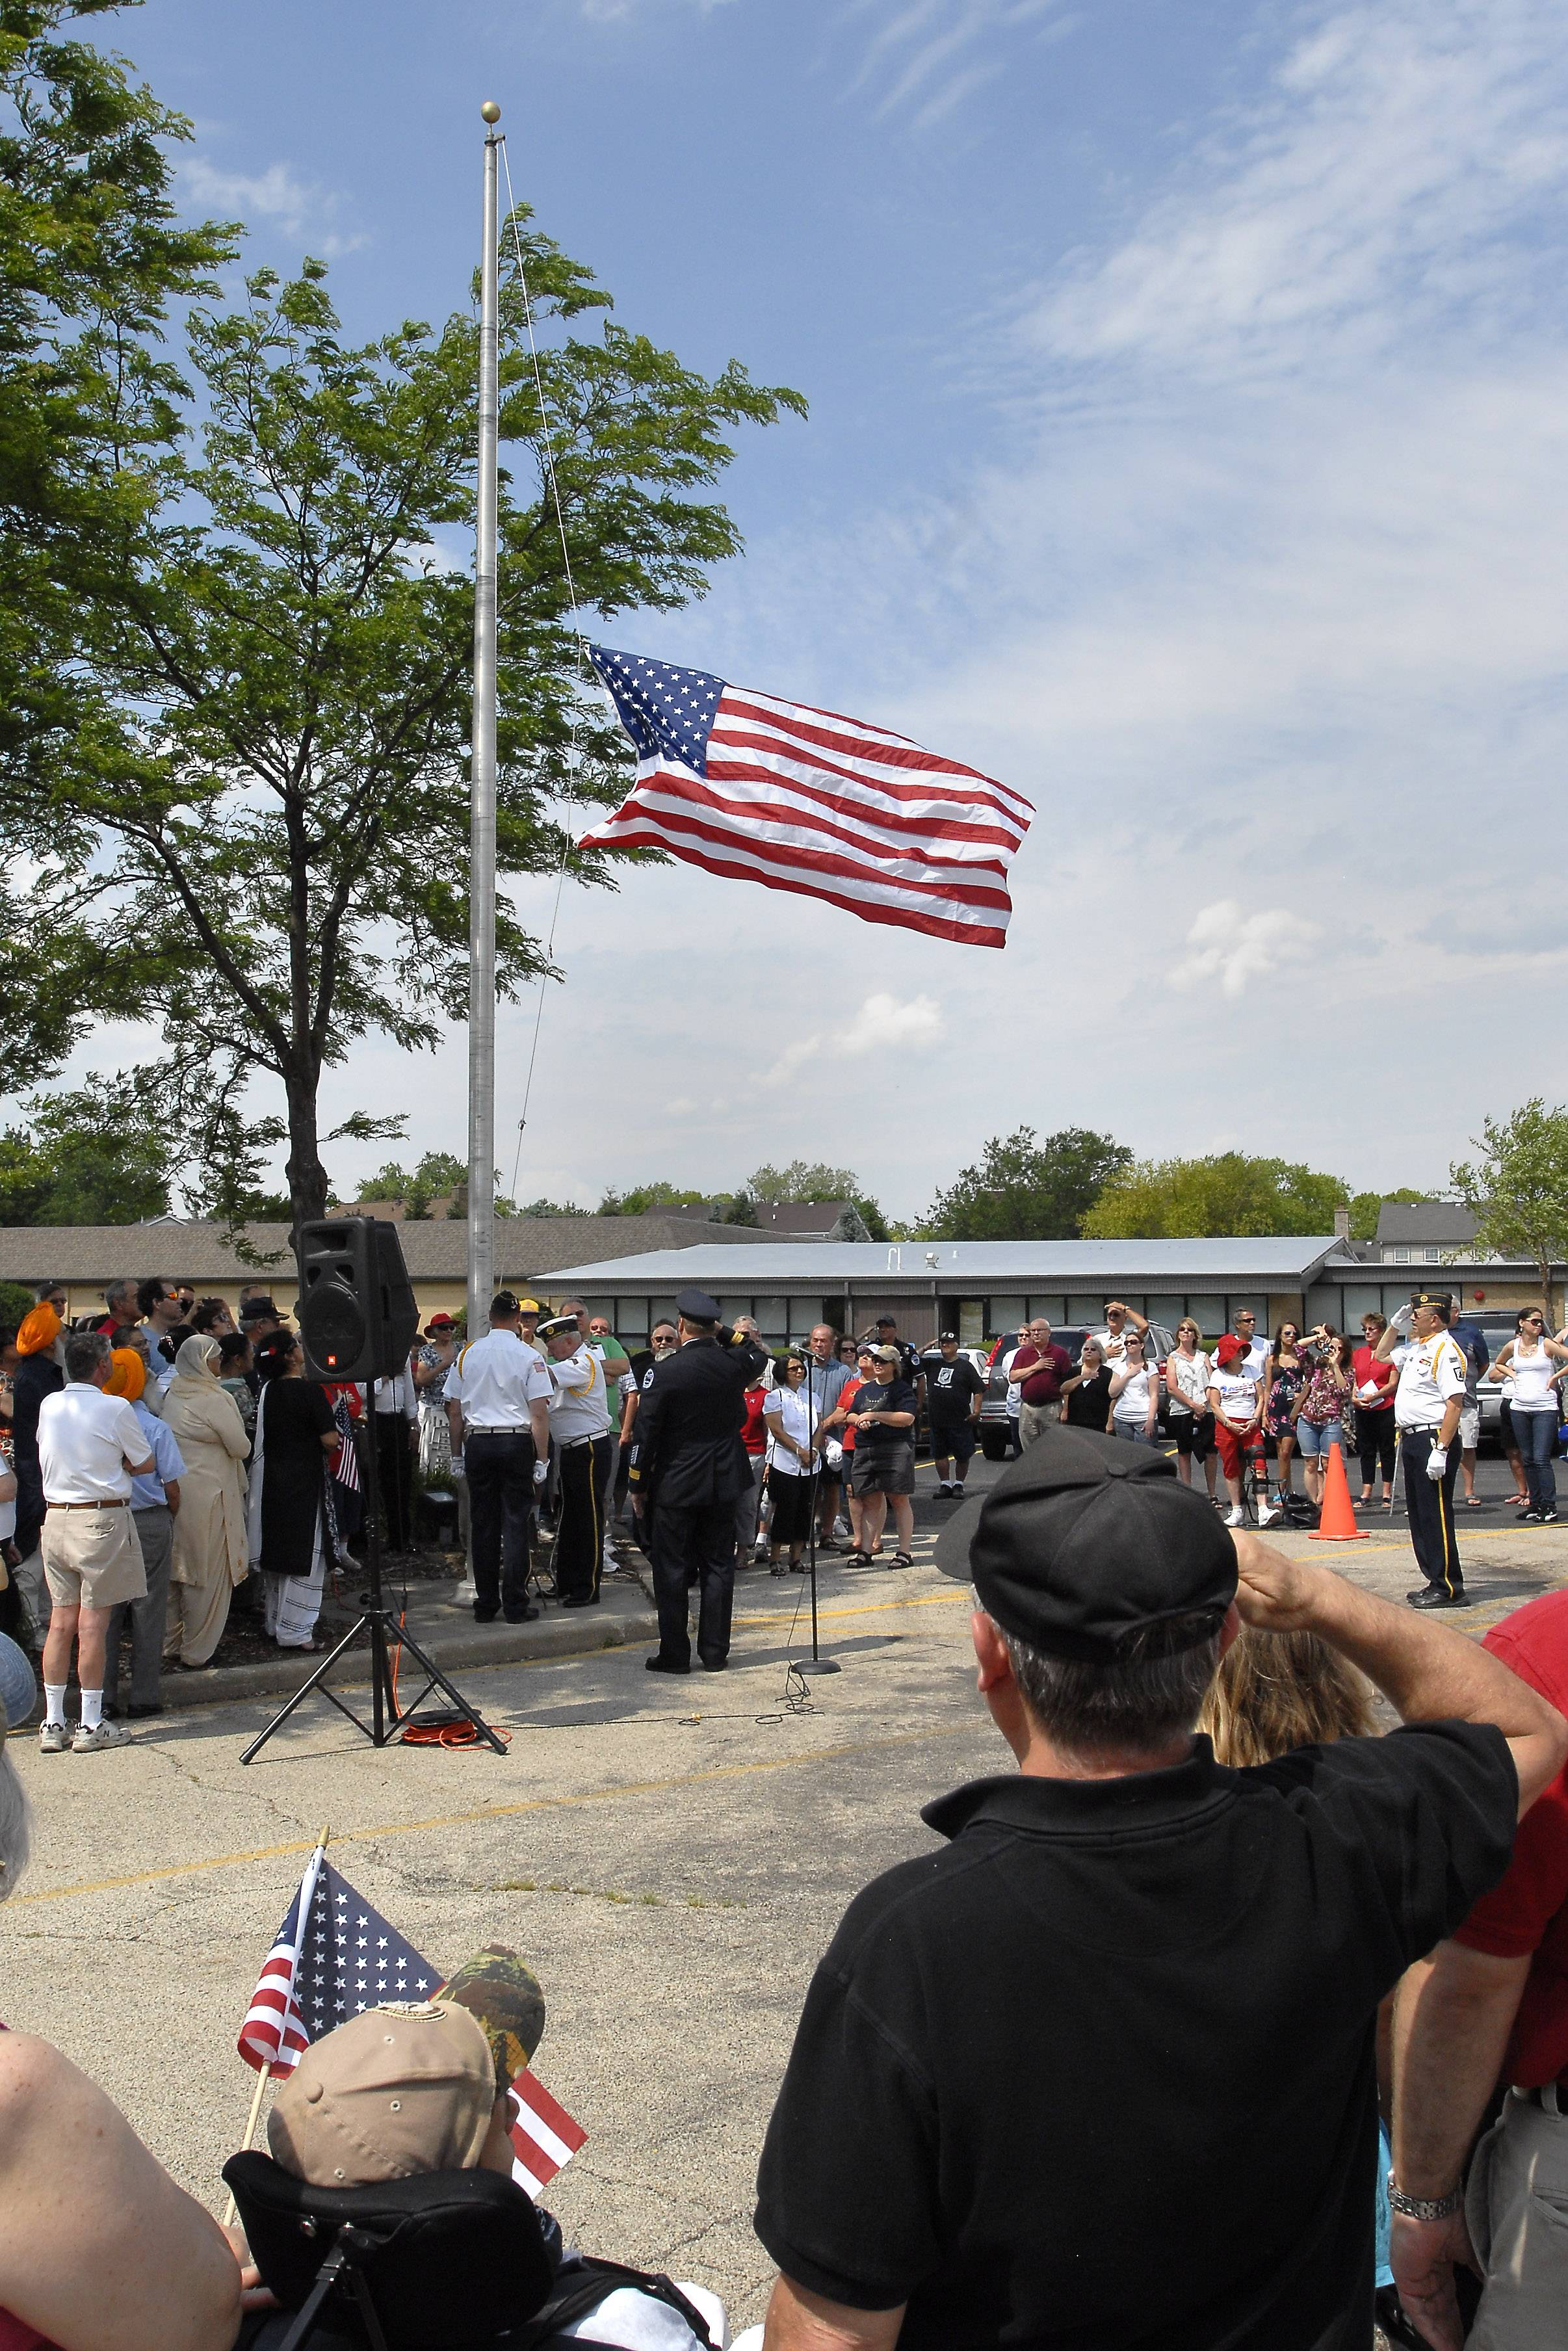 The flag is lowered to half-staff Monday during the Memorial Day service at the St. Peter's Lutheran Church cemetery in Schaumburg.